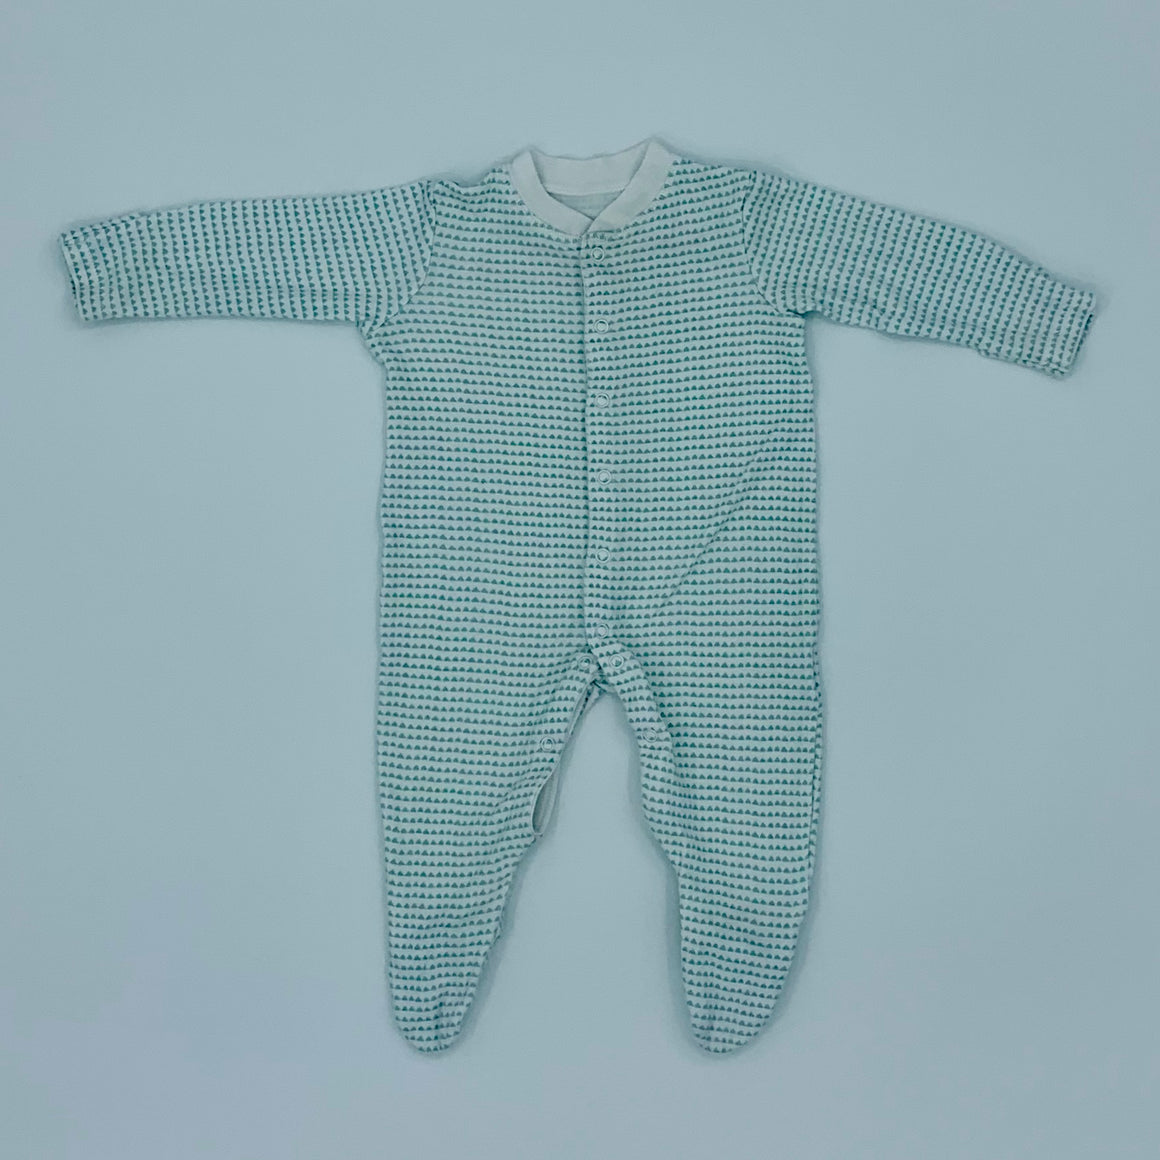 Hardly Worn John Lewis mint green sleepsuit size 3-6 months